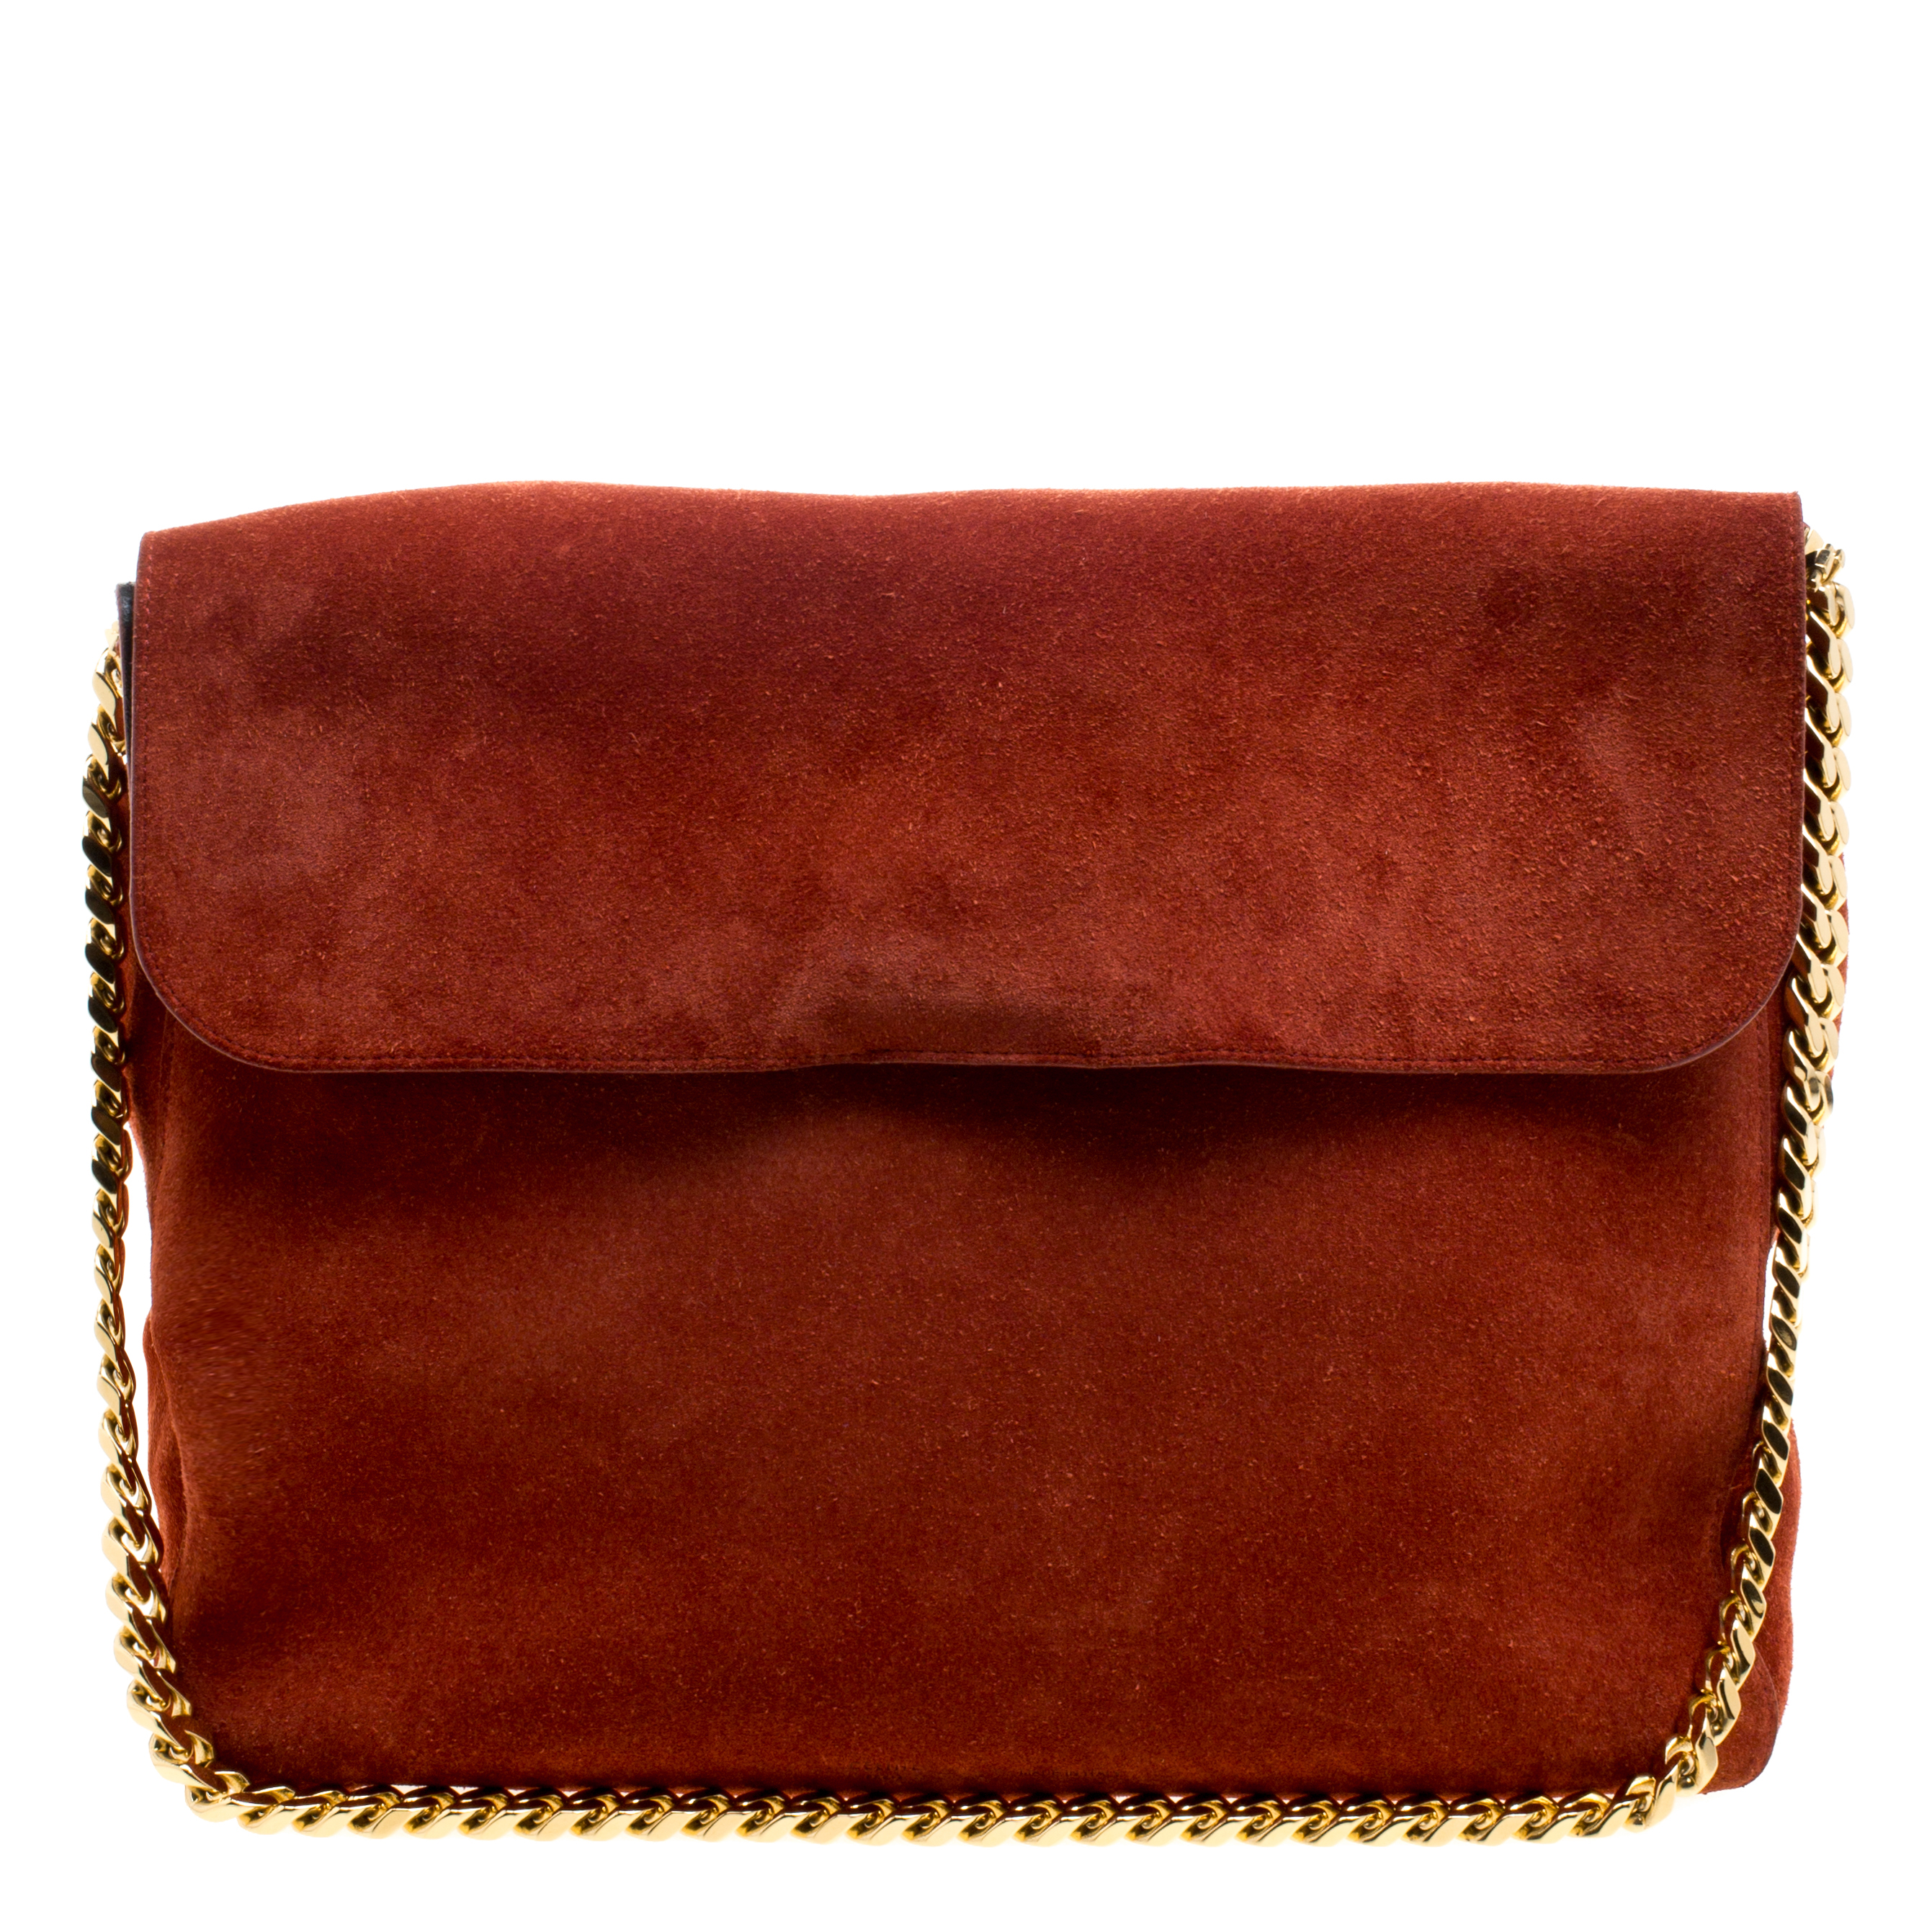 Buy Celine Red Suede Gourmette Shoulder Bag 117403 at best price  b05a10fea0e15